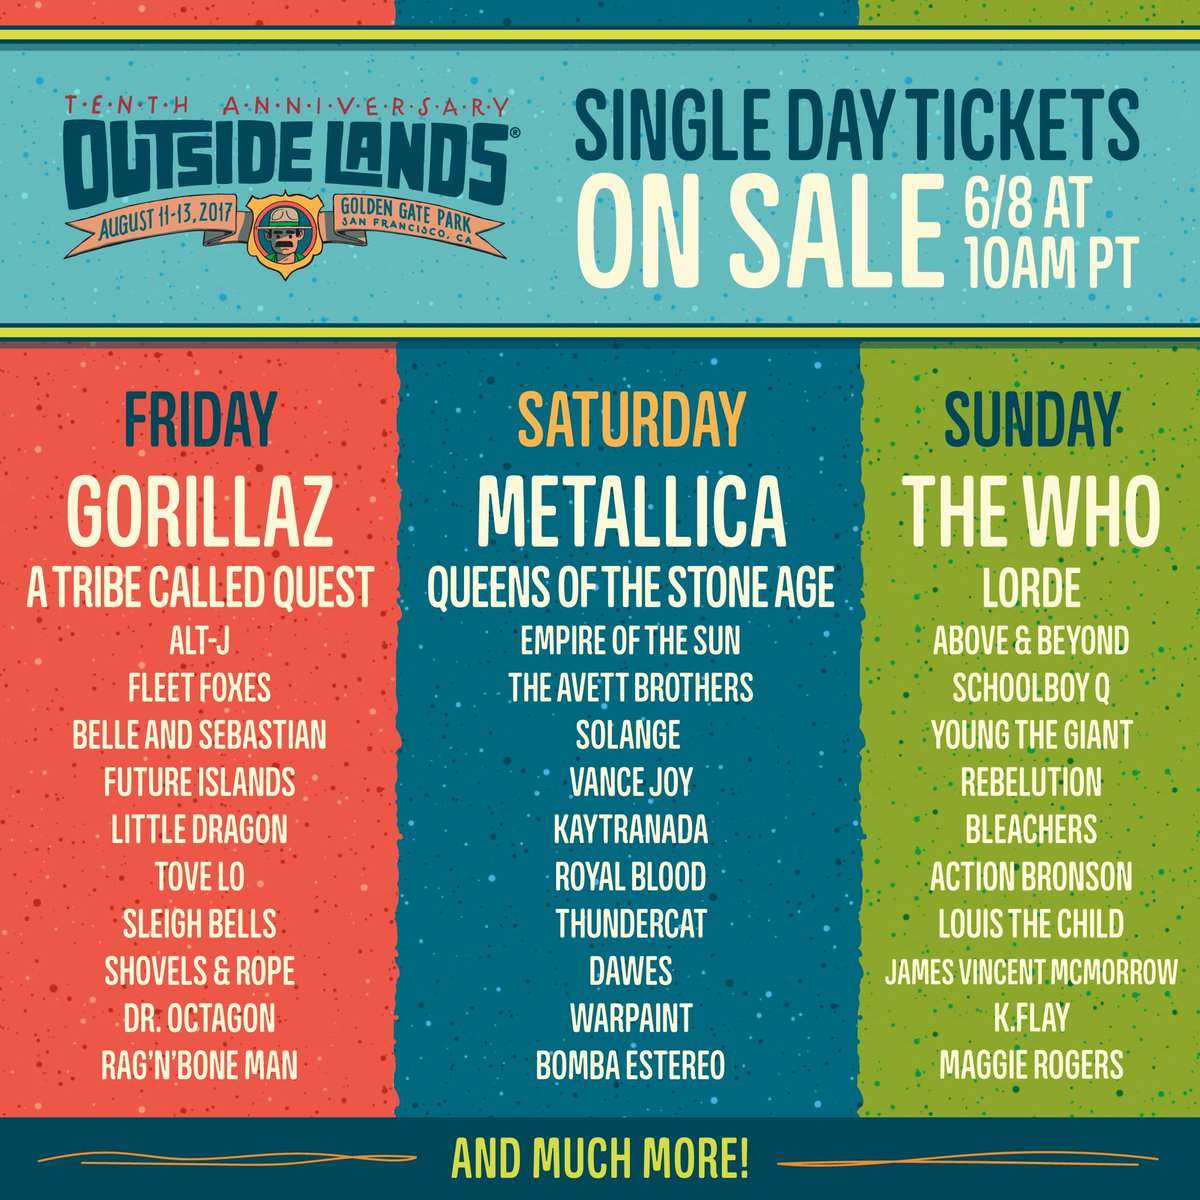 OSL 2017 Single Day Tickets